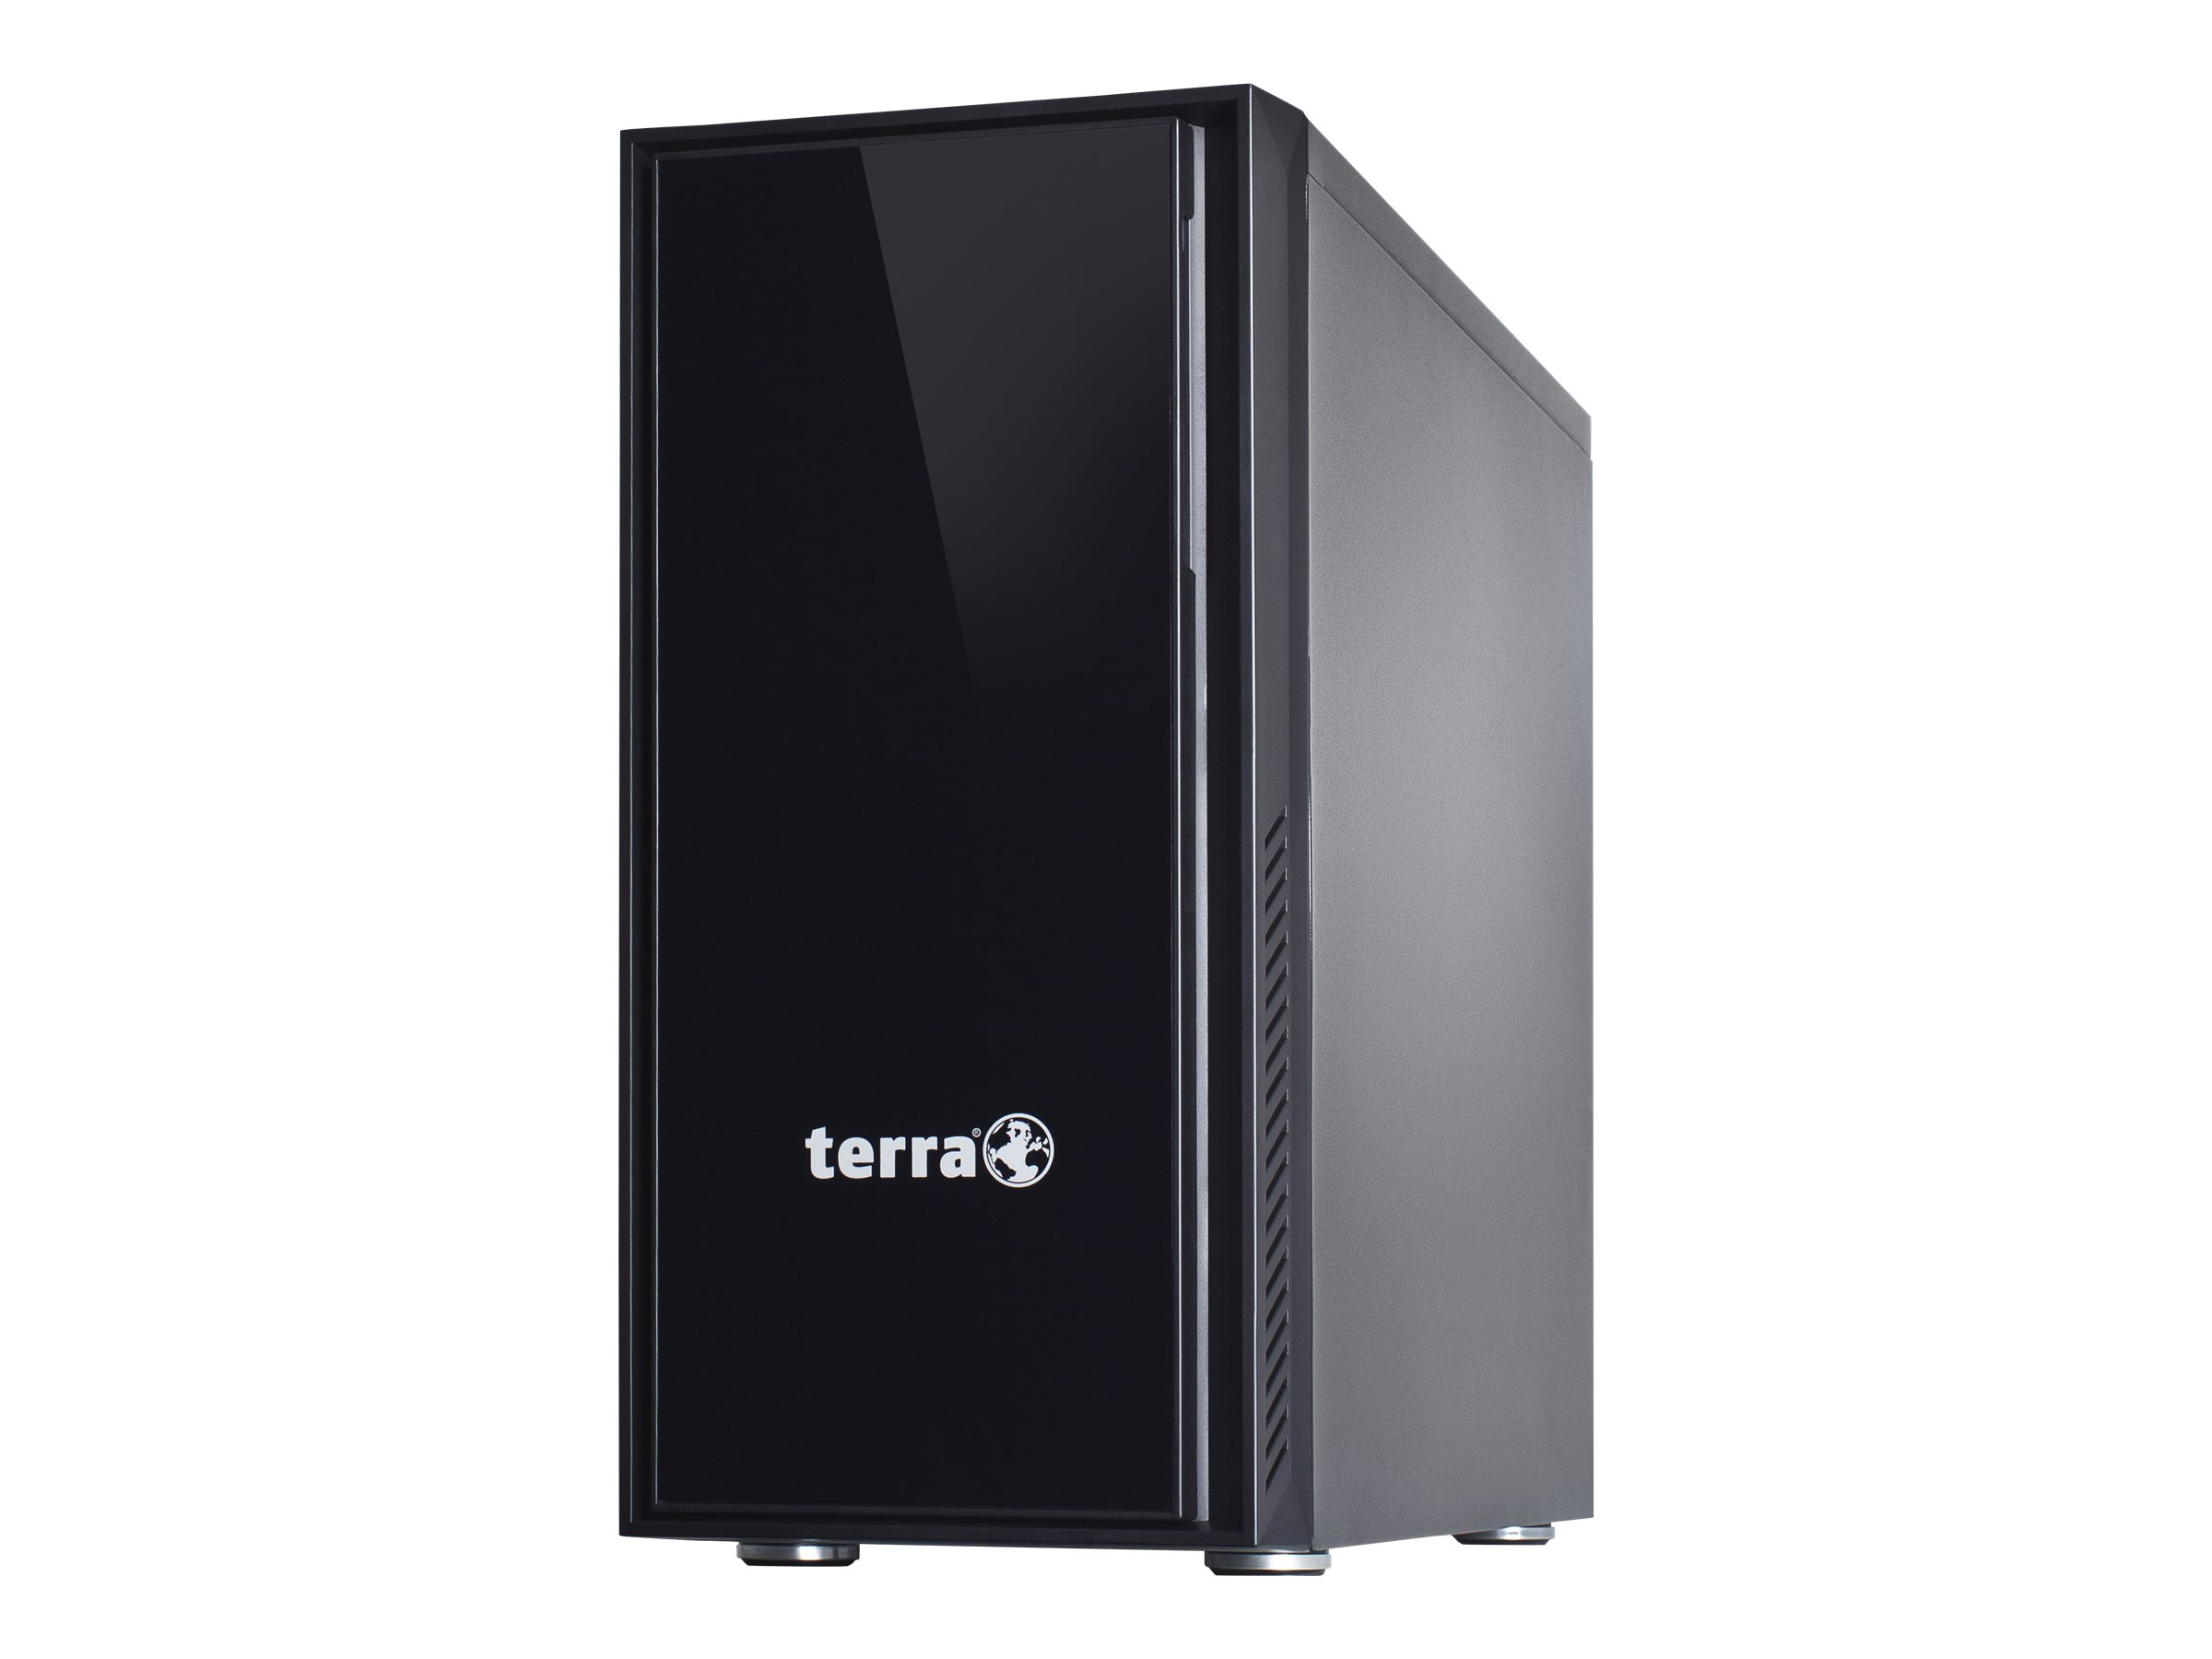 Wortmann TERRA WORKSTATION 7500 SILENT vPro - MDT - 1 x Xeon E5-1620V4 / 3.5 GHz - RAM 16 GB - SSD 250 GB, HDD 500 GB - DVD-Writ